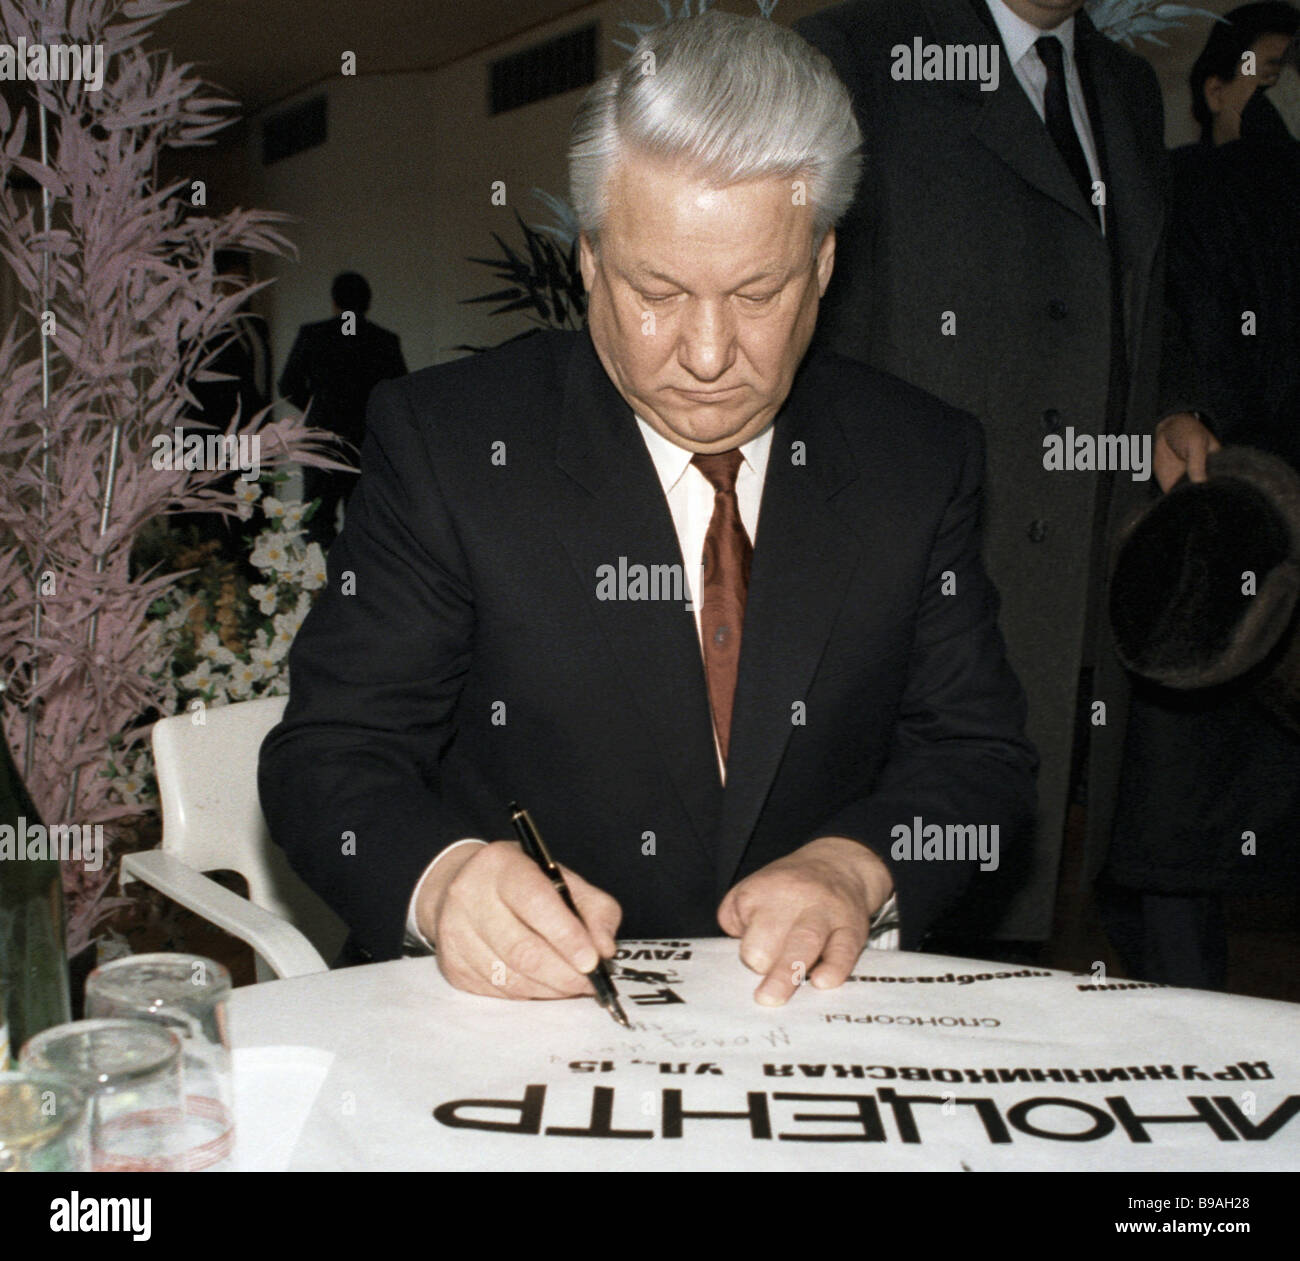 Russian President Boris Yeltsin gives an autograph at the Russian Intellectuals congress - Stock Image